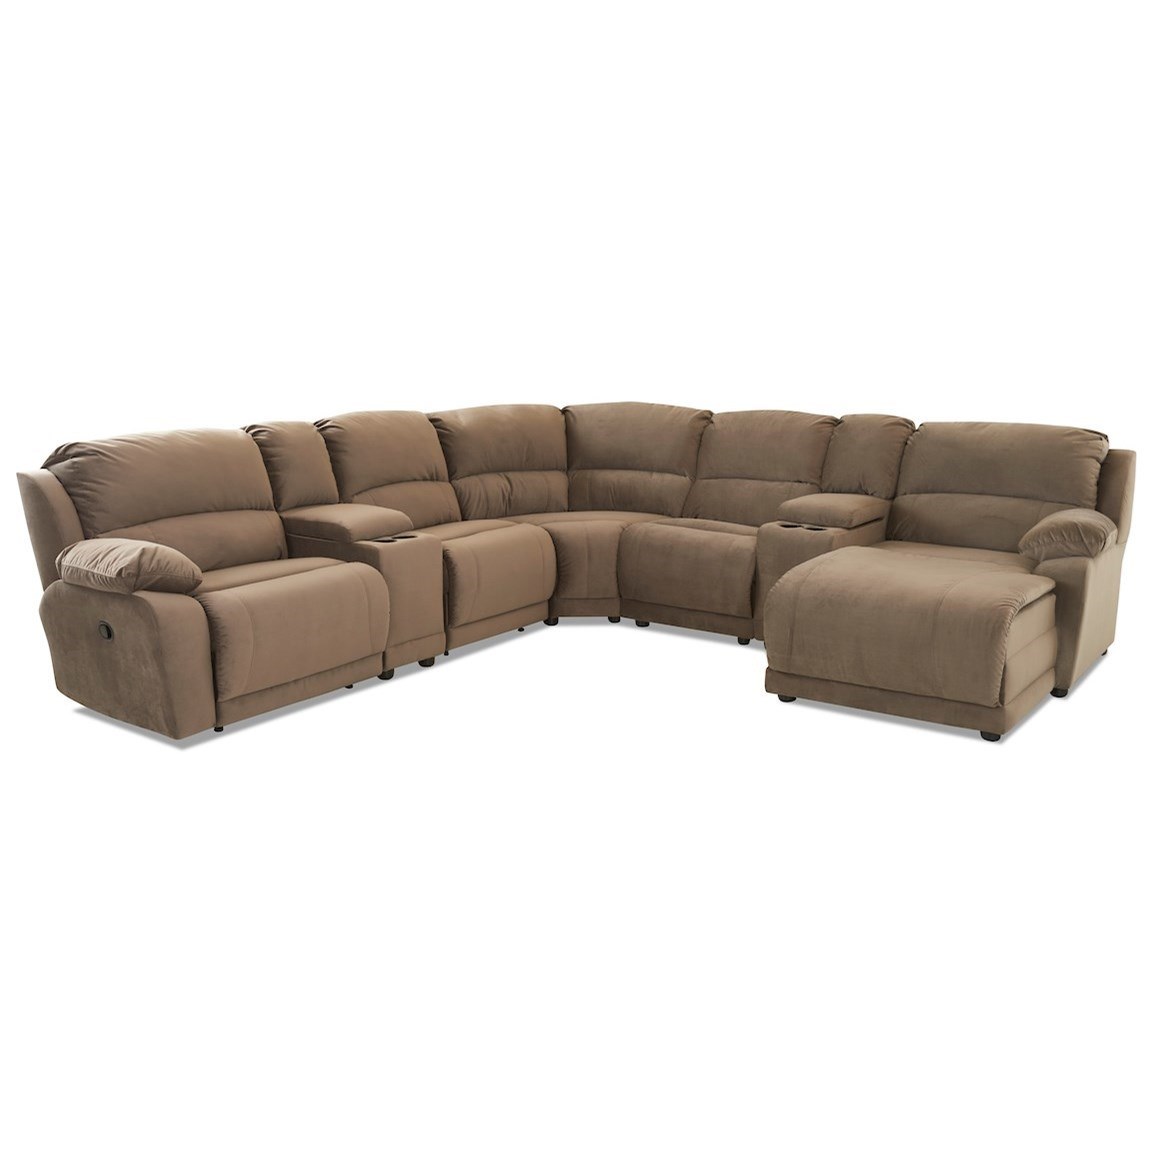 Charmed Seven Piece Sectional by Klaussner at Northeast Factory Direct